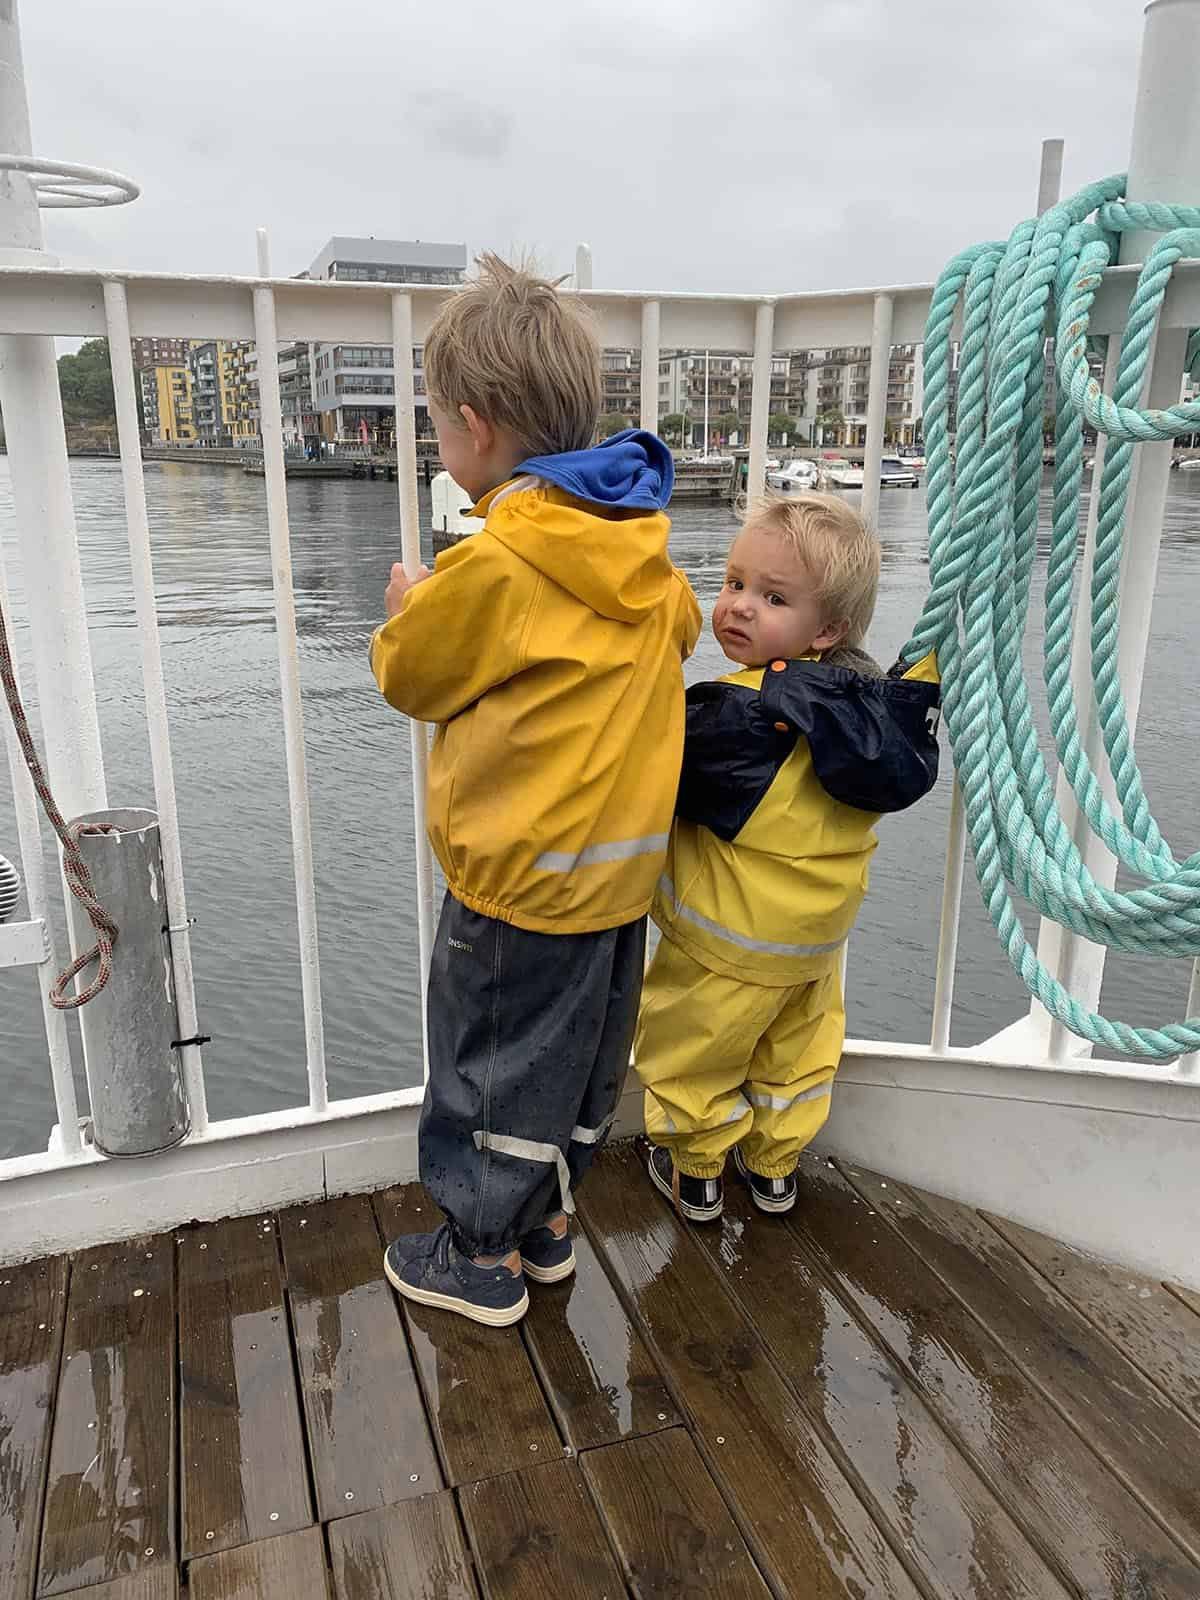 two boys wearing yellow rain suits standing on a ferry boat